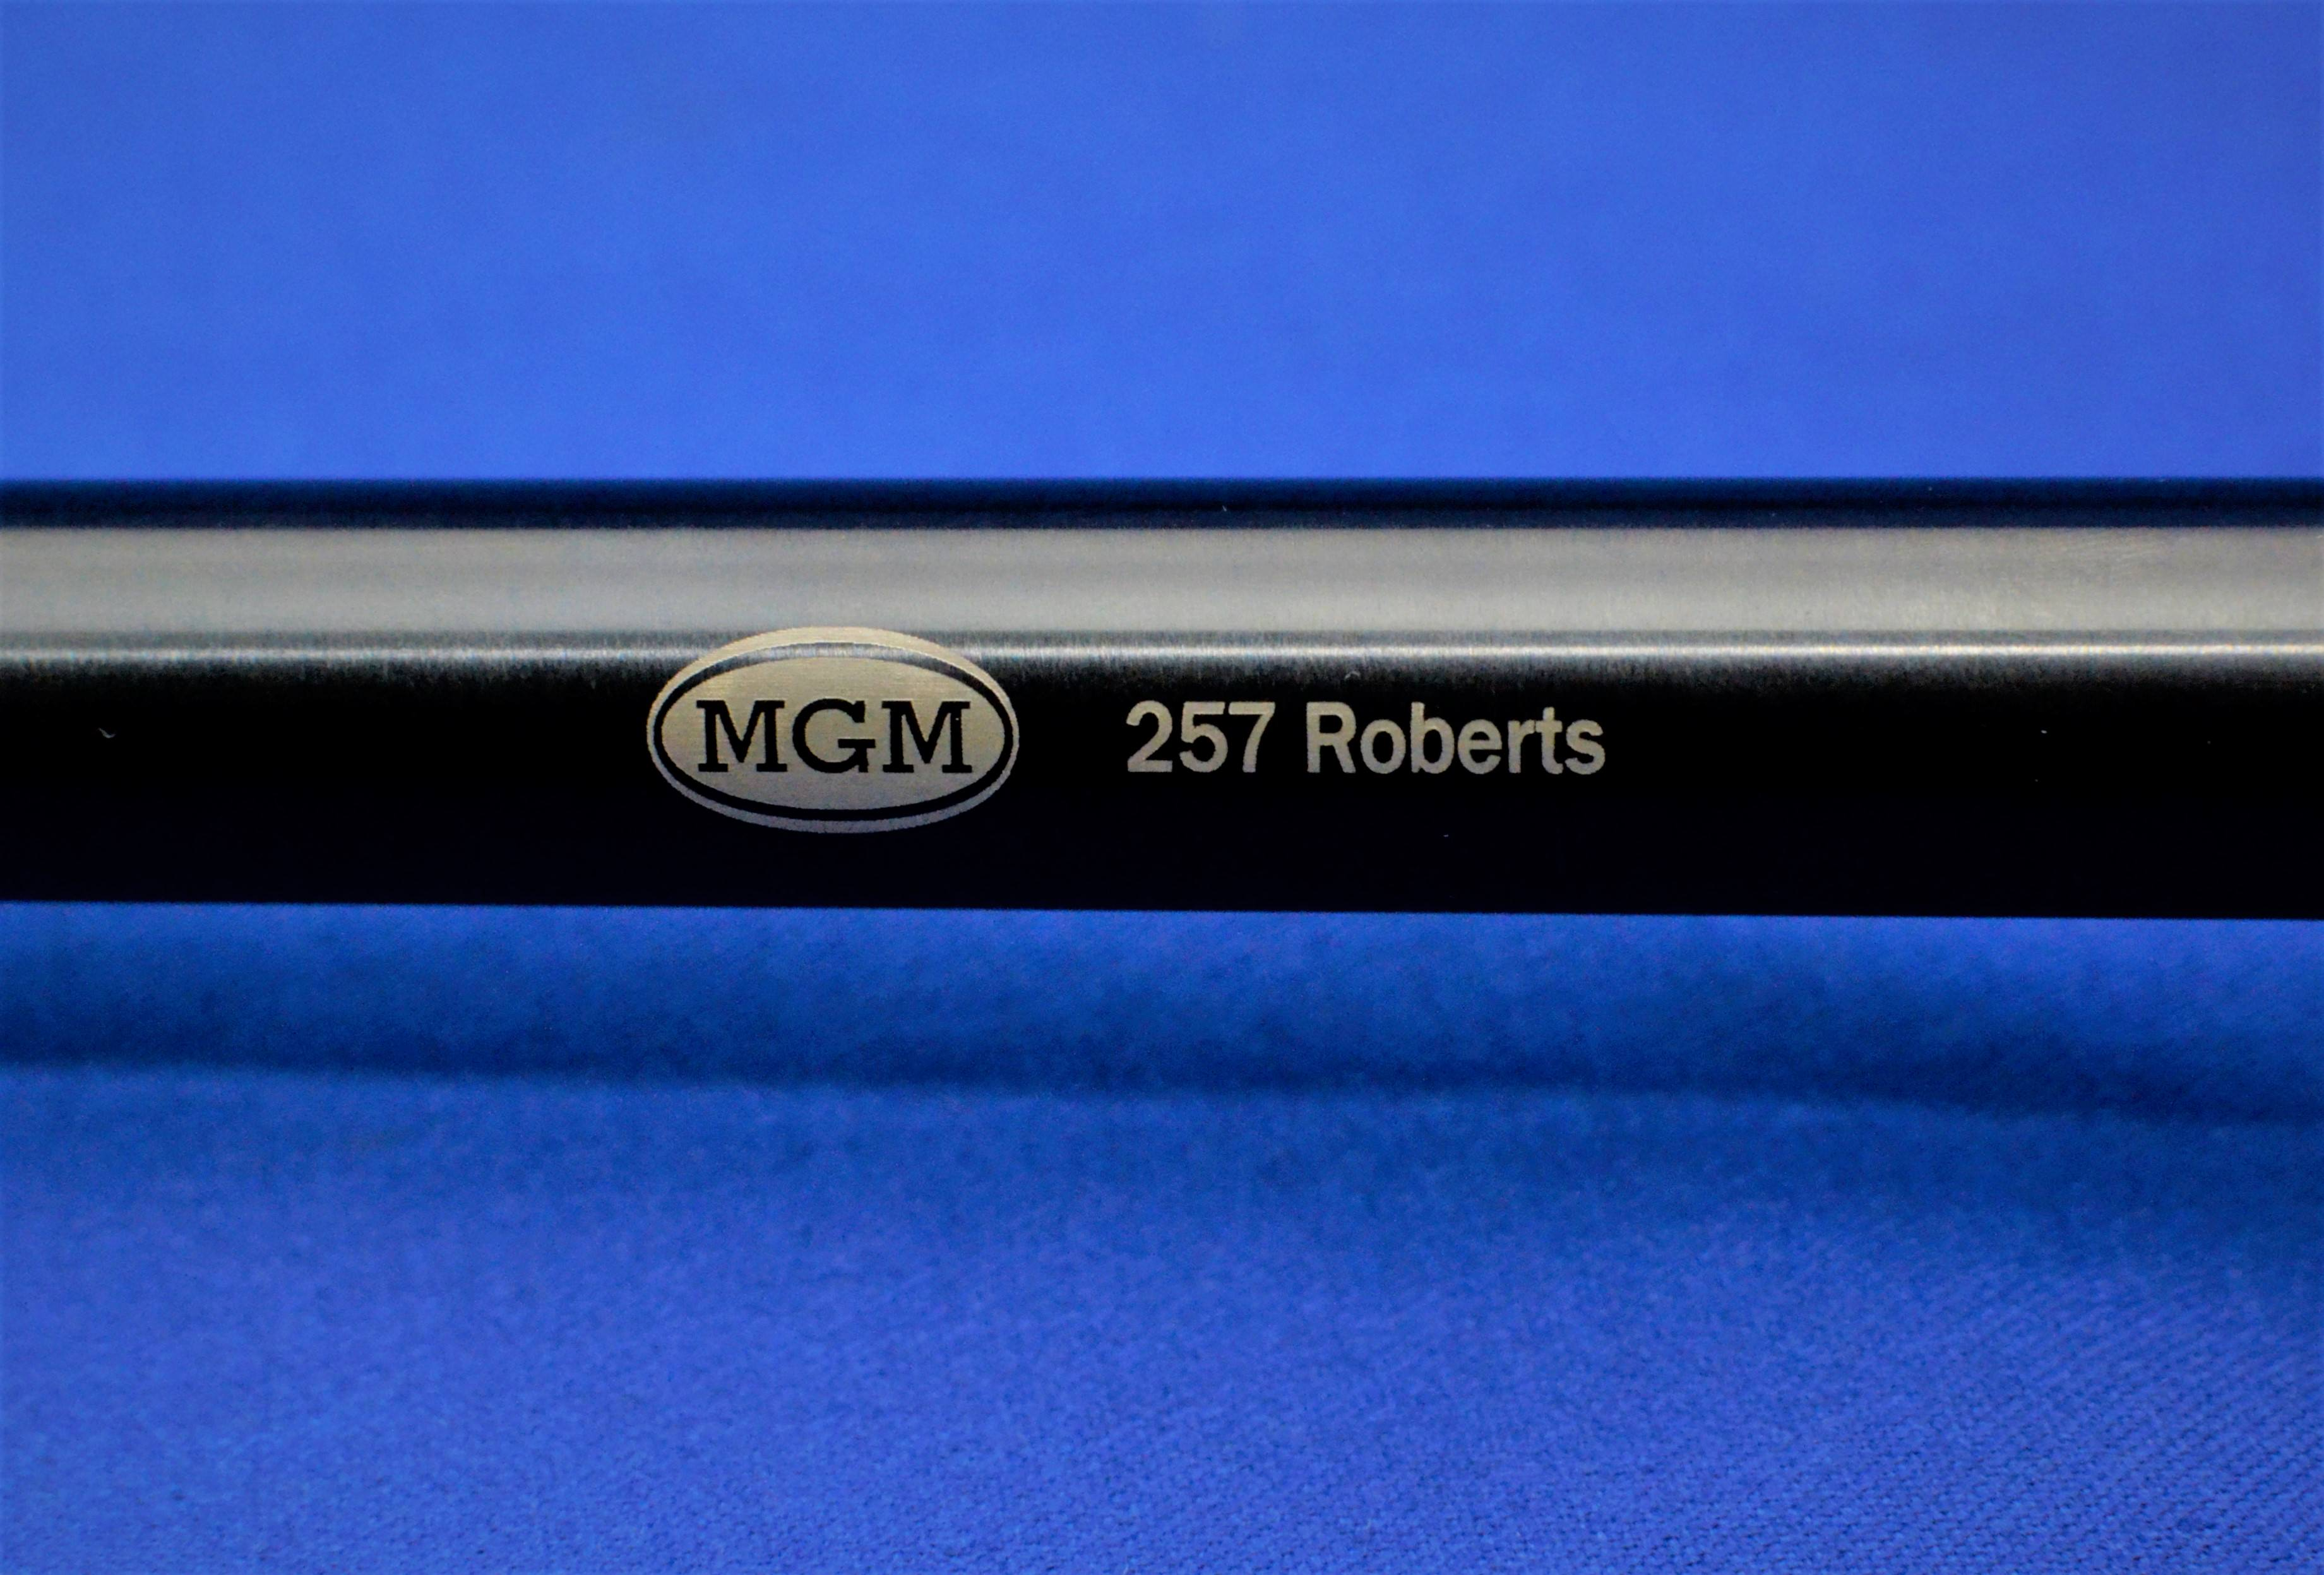 Thompson Center Encore, Match Grade Machine, MGM, Barrels, Rifles, Pistols, 257 Roberts, Chrome Moly Blued